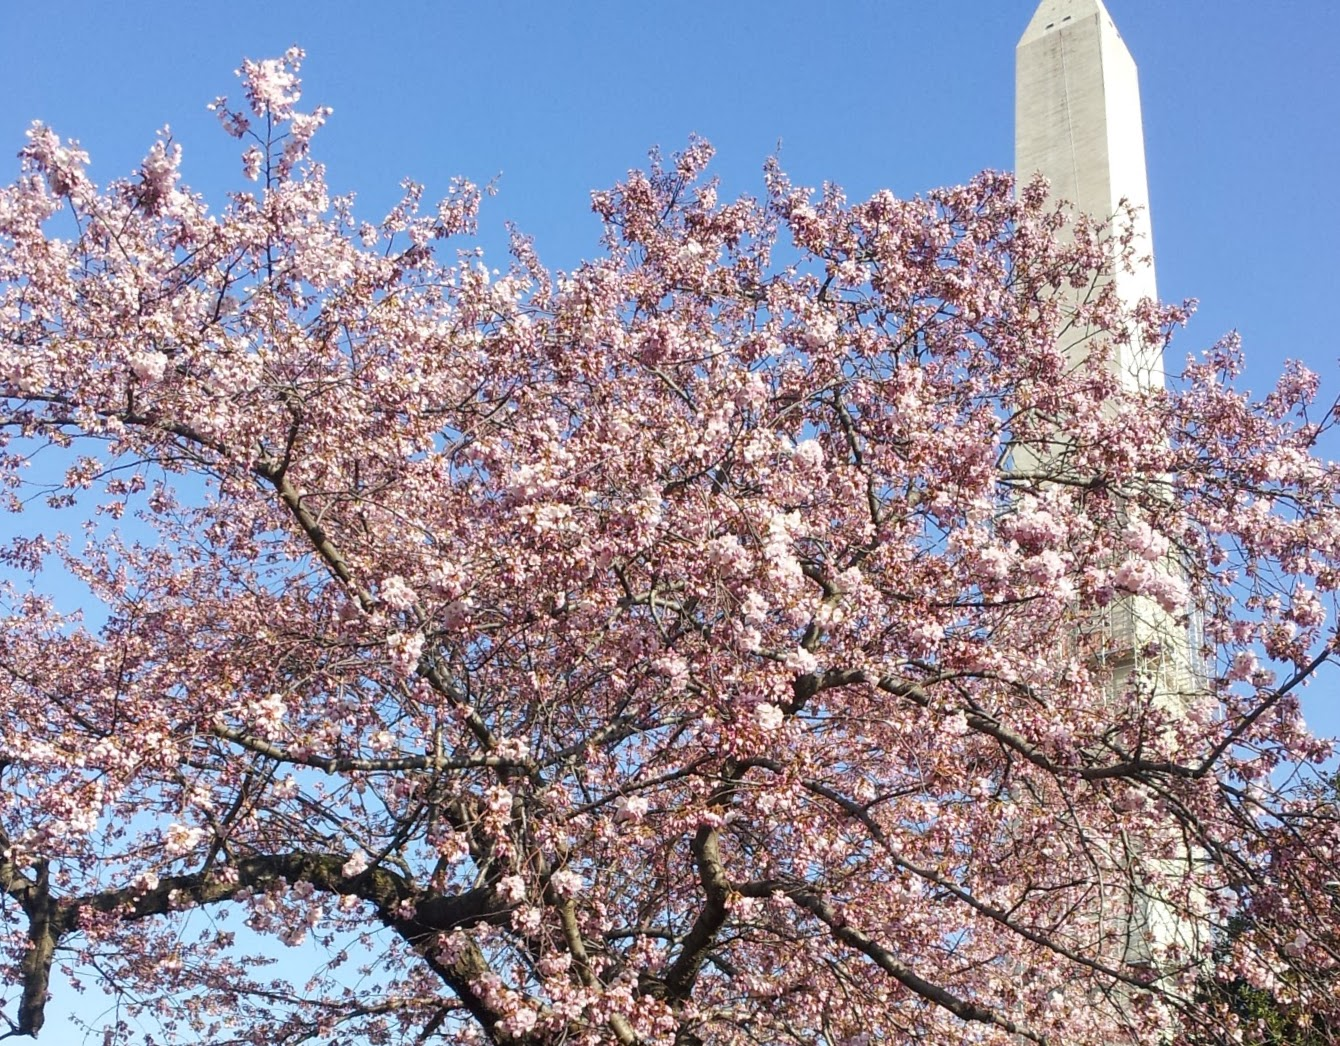 Best Time To Visit Washington Dc Cherry Blossoms